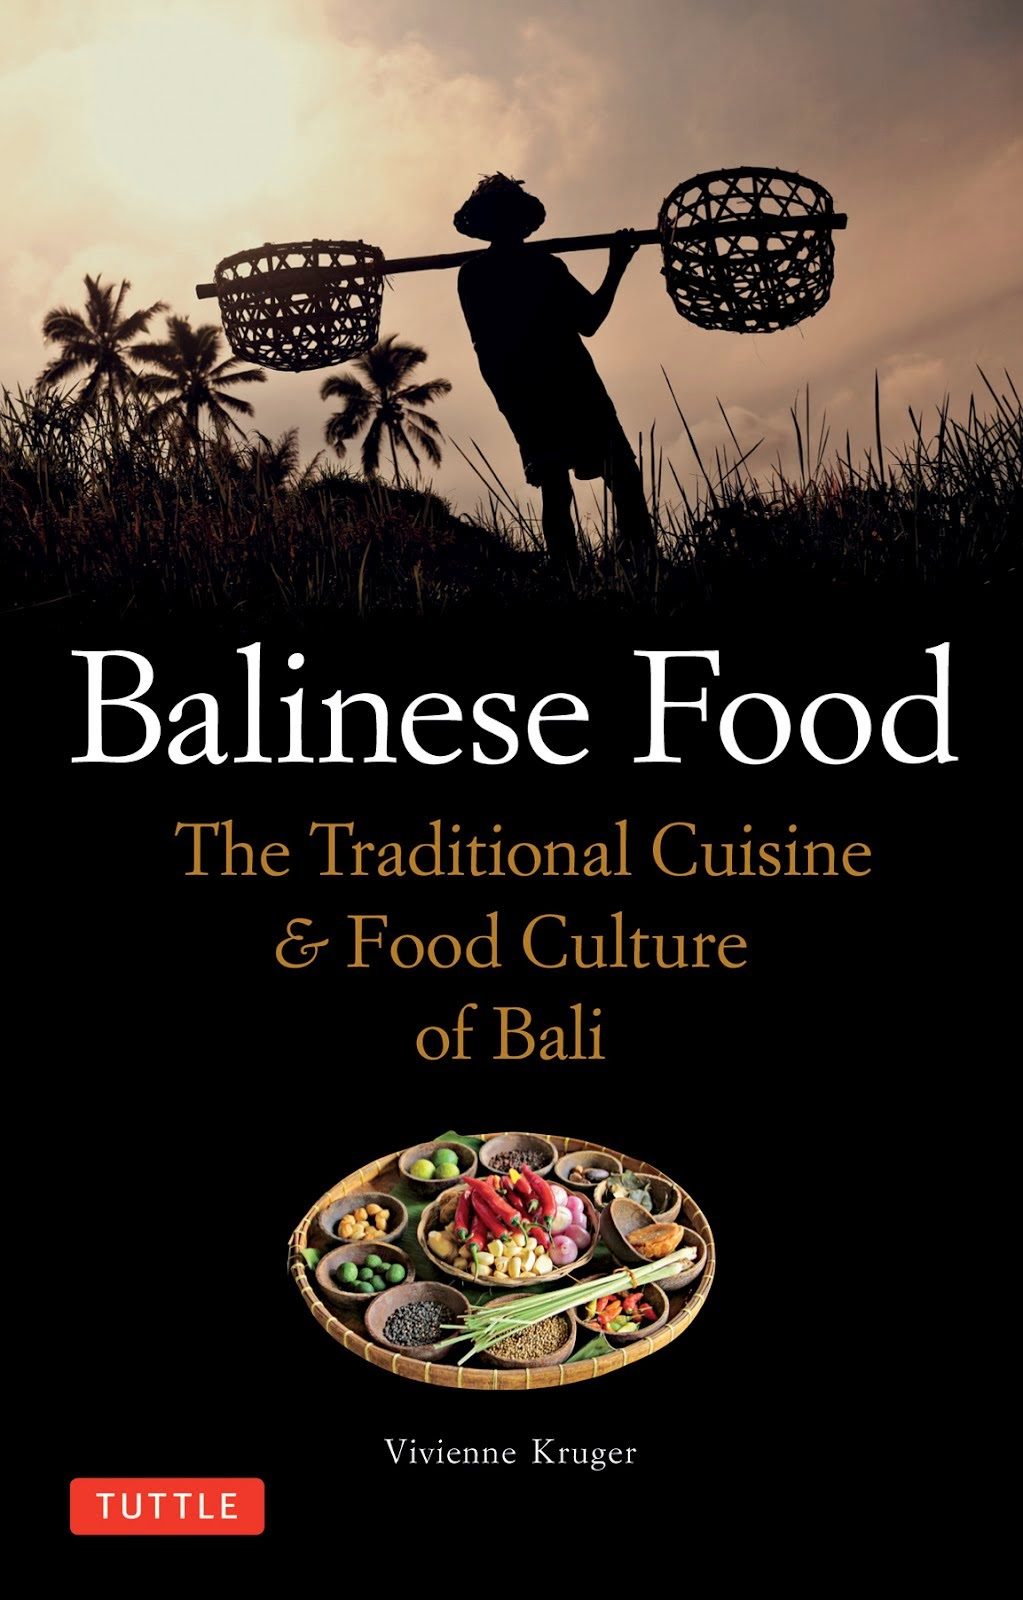 DR. VIVIENNE KRUGER'S BOOK.  BALINESE FOOD: THE TRADITIONAL CUISINE AND FOOD CULTURE OF BALI